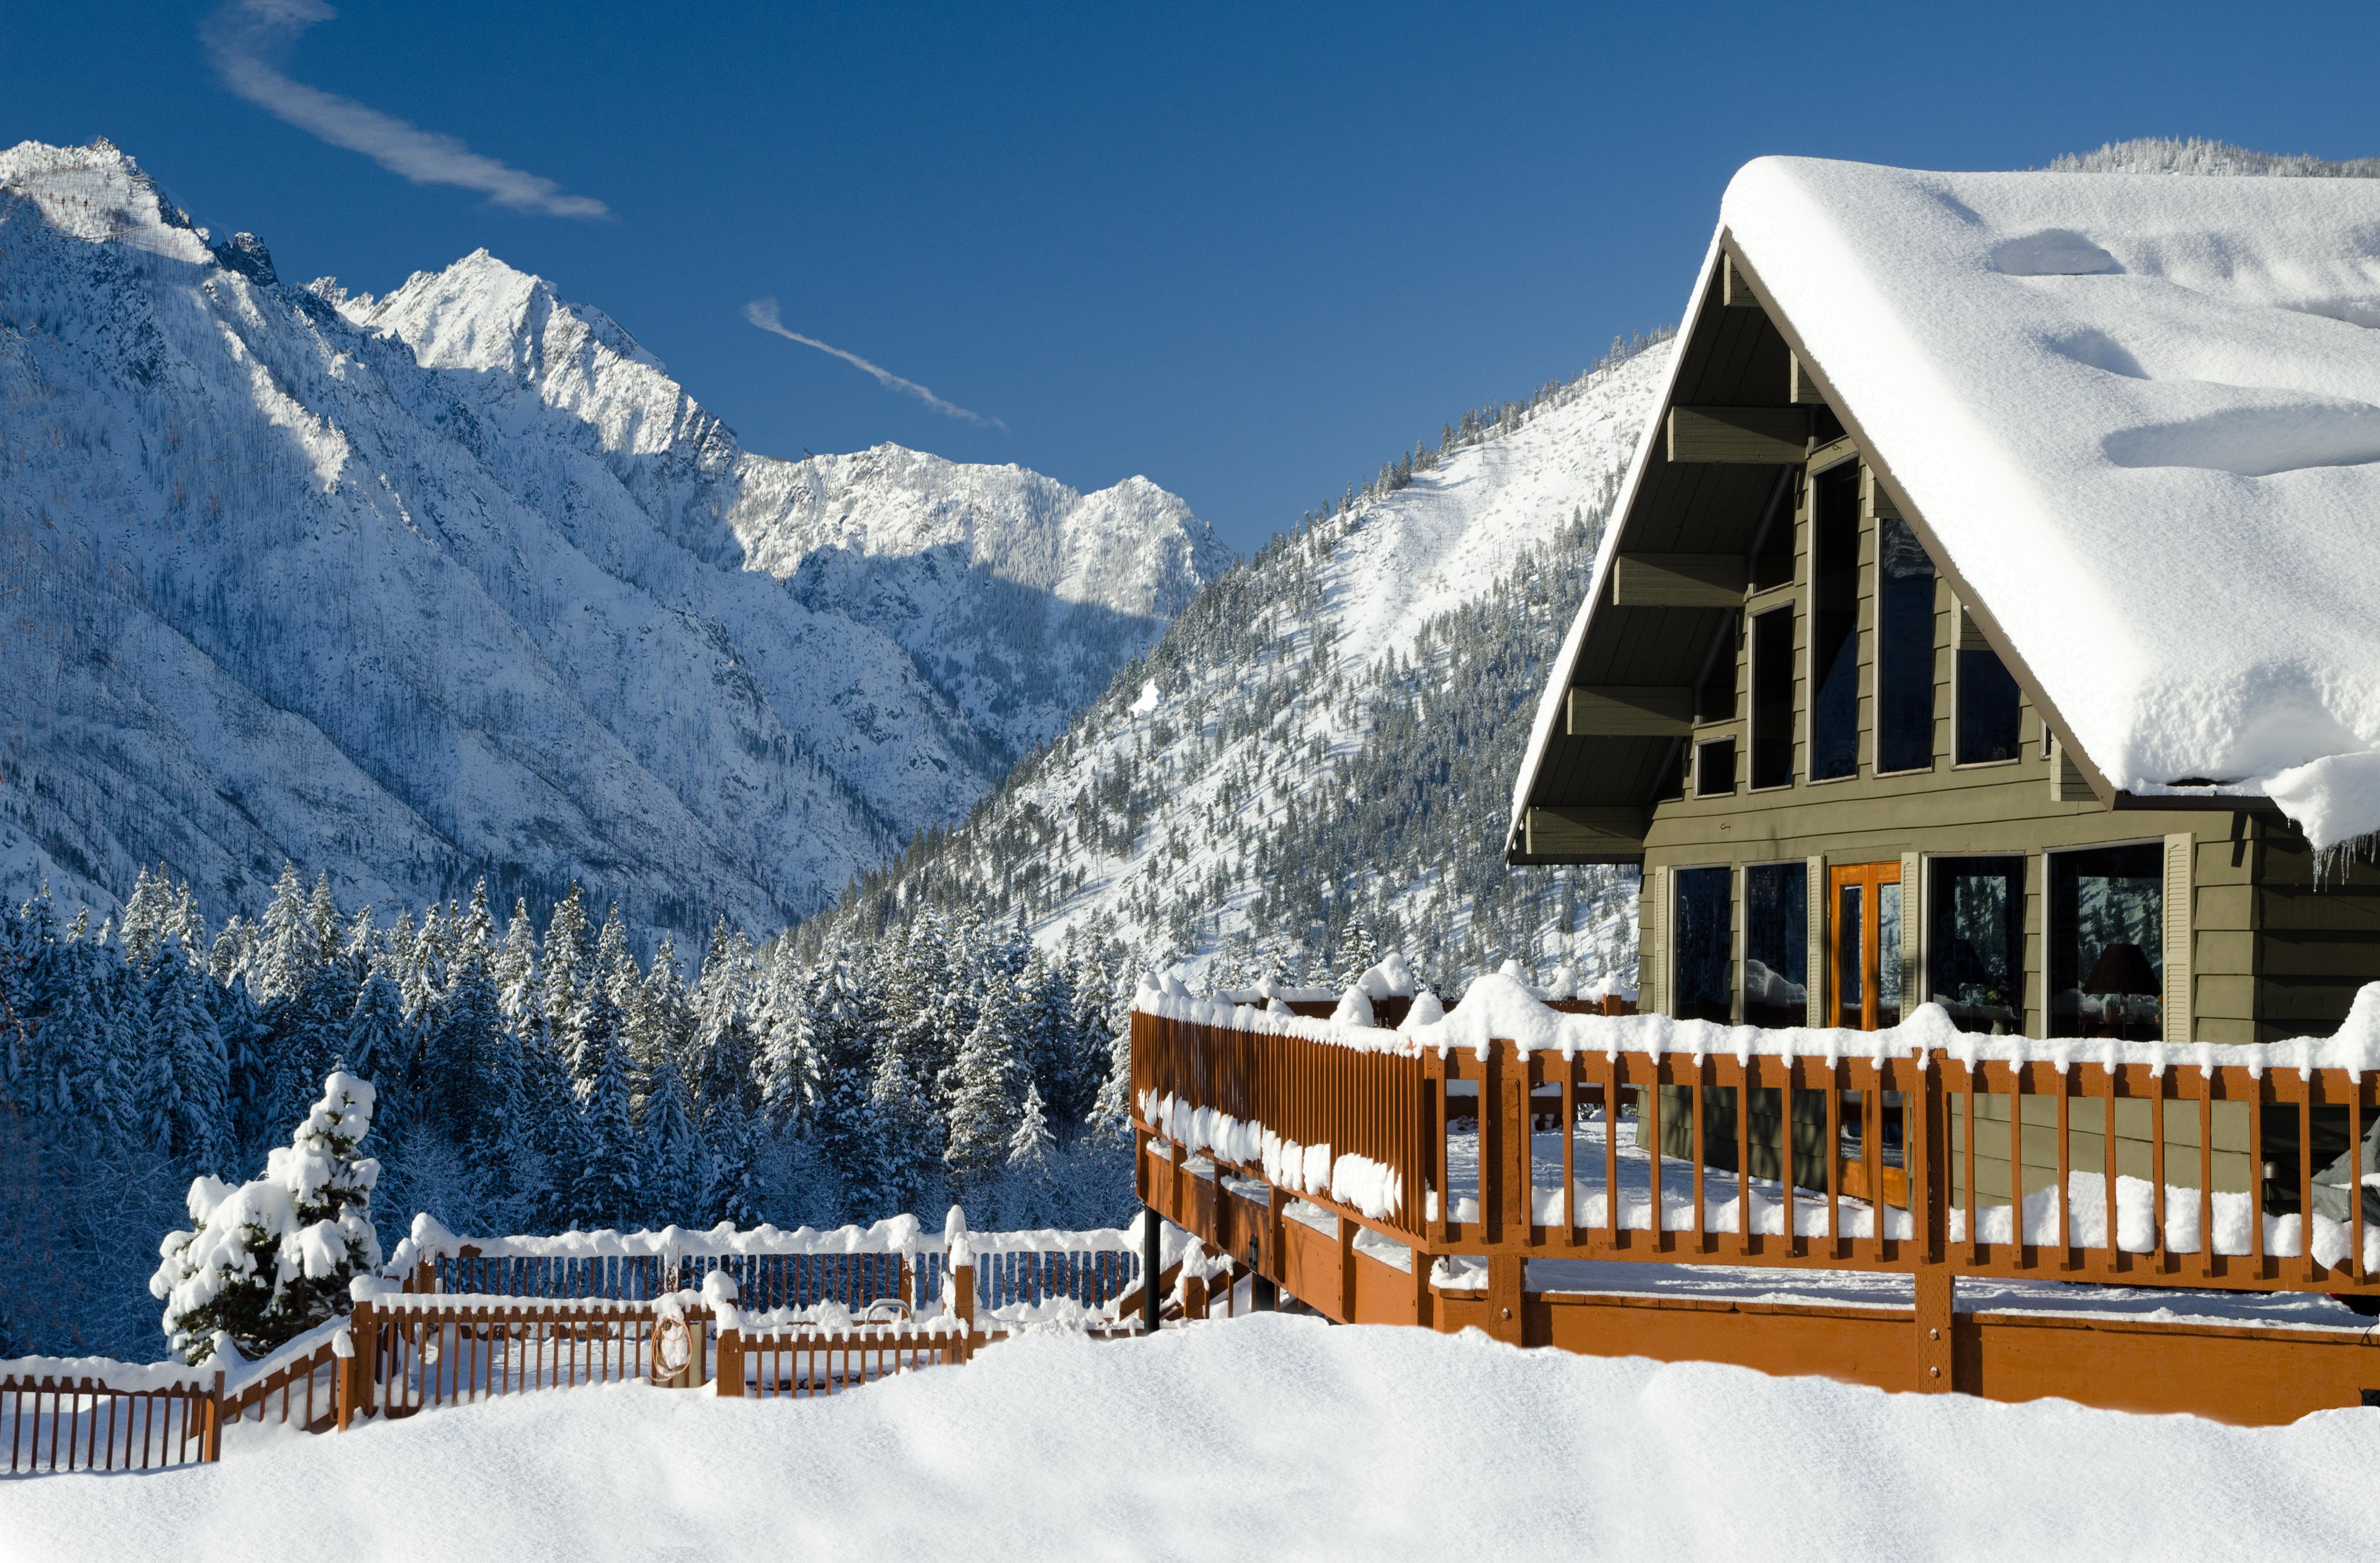 Mountain Home Lodge, Leavenworth, WA